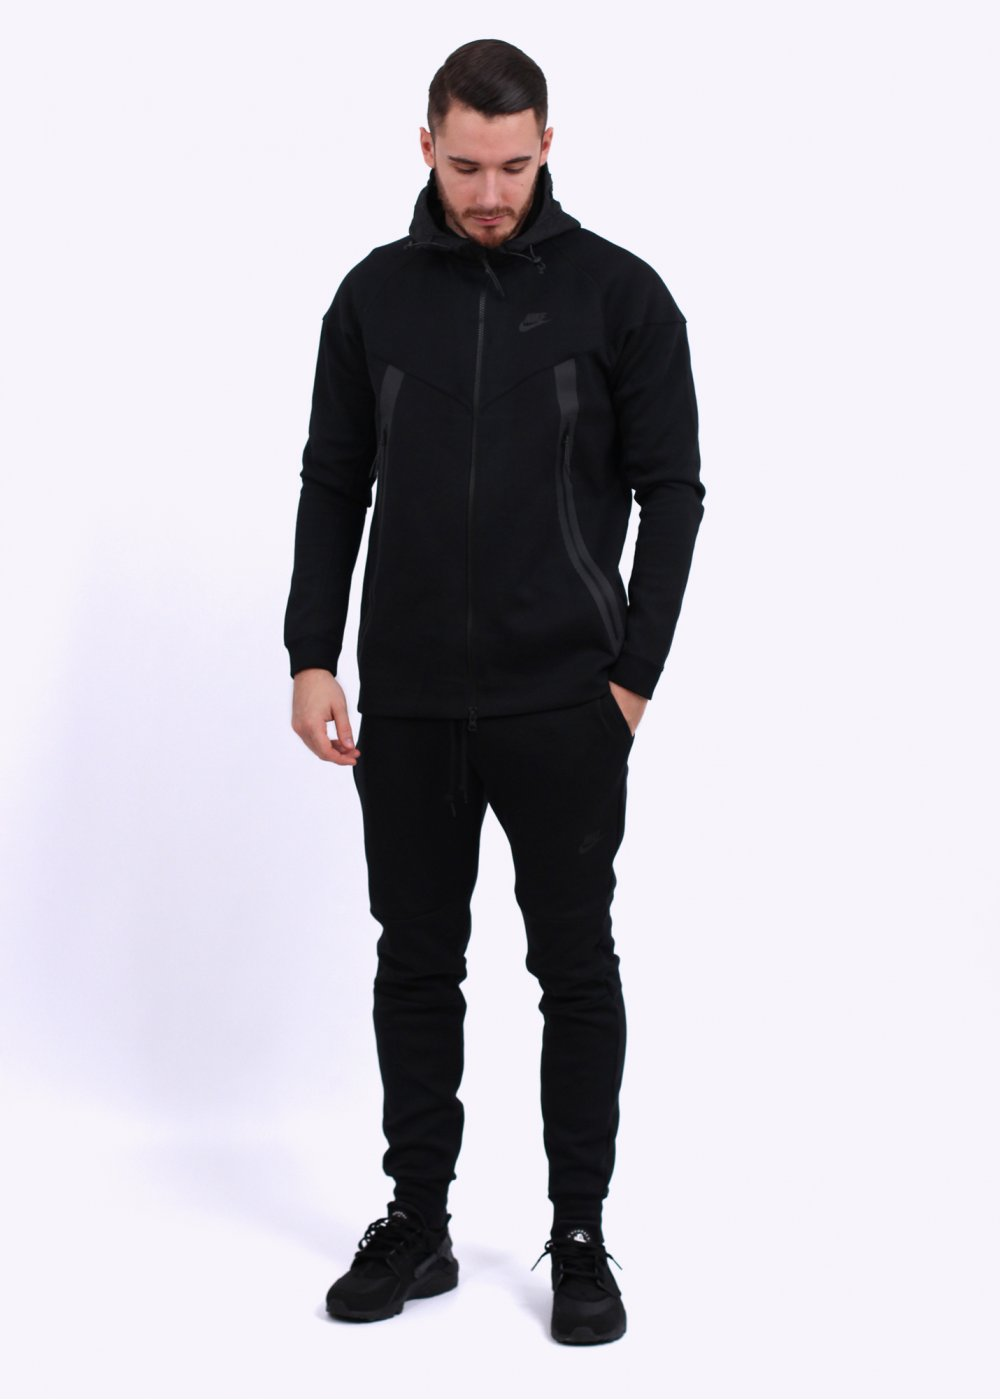 Nike NSW Tech Bonded Windrunner Jacket - Black 4009b52554e0